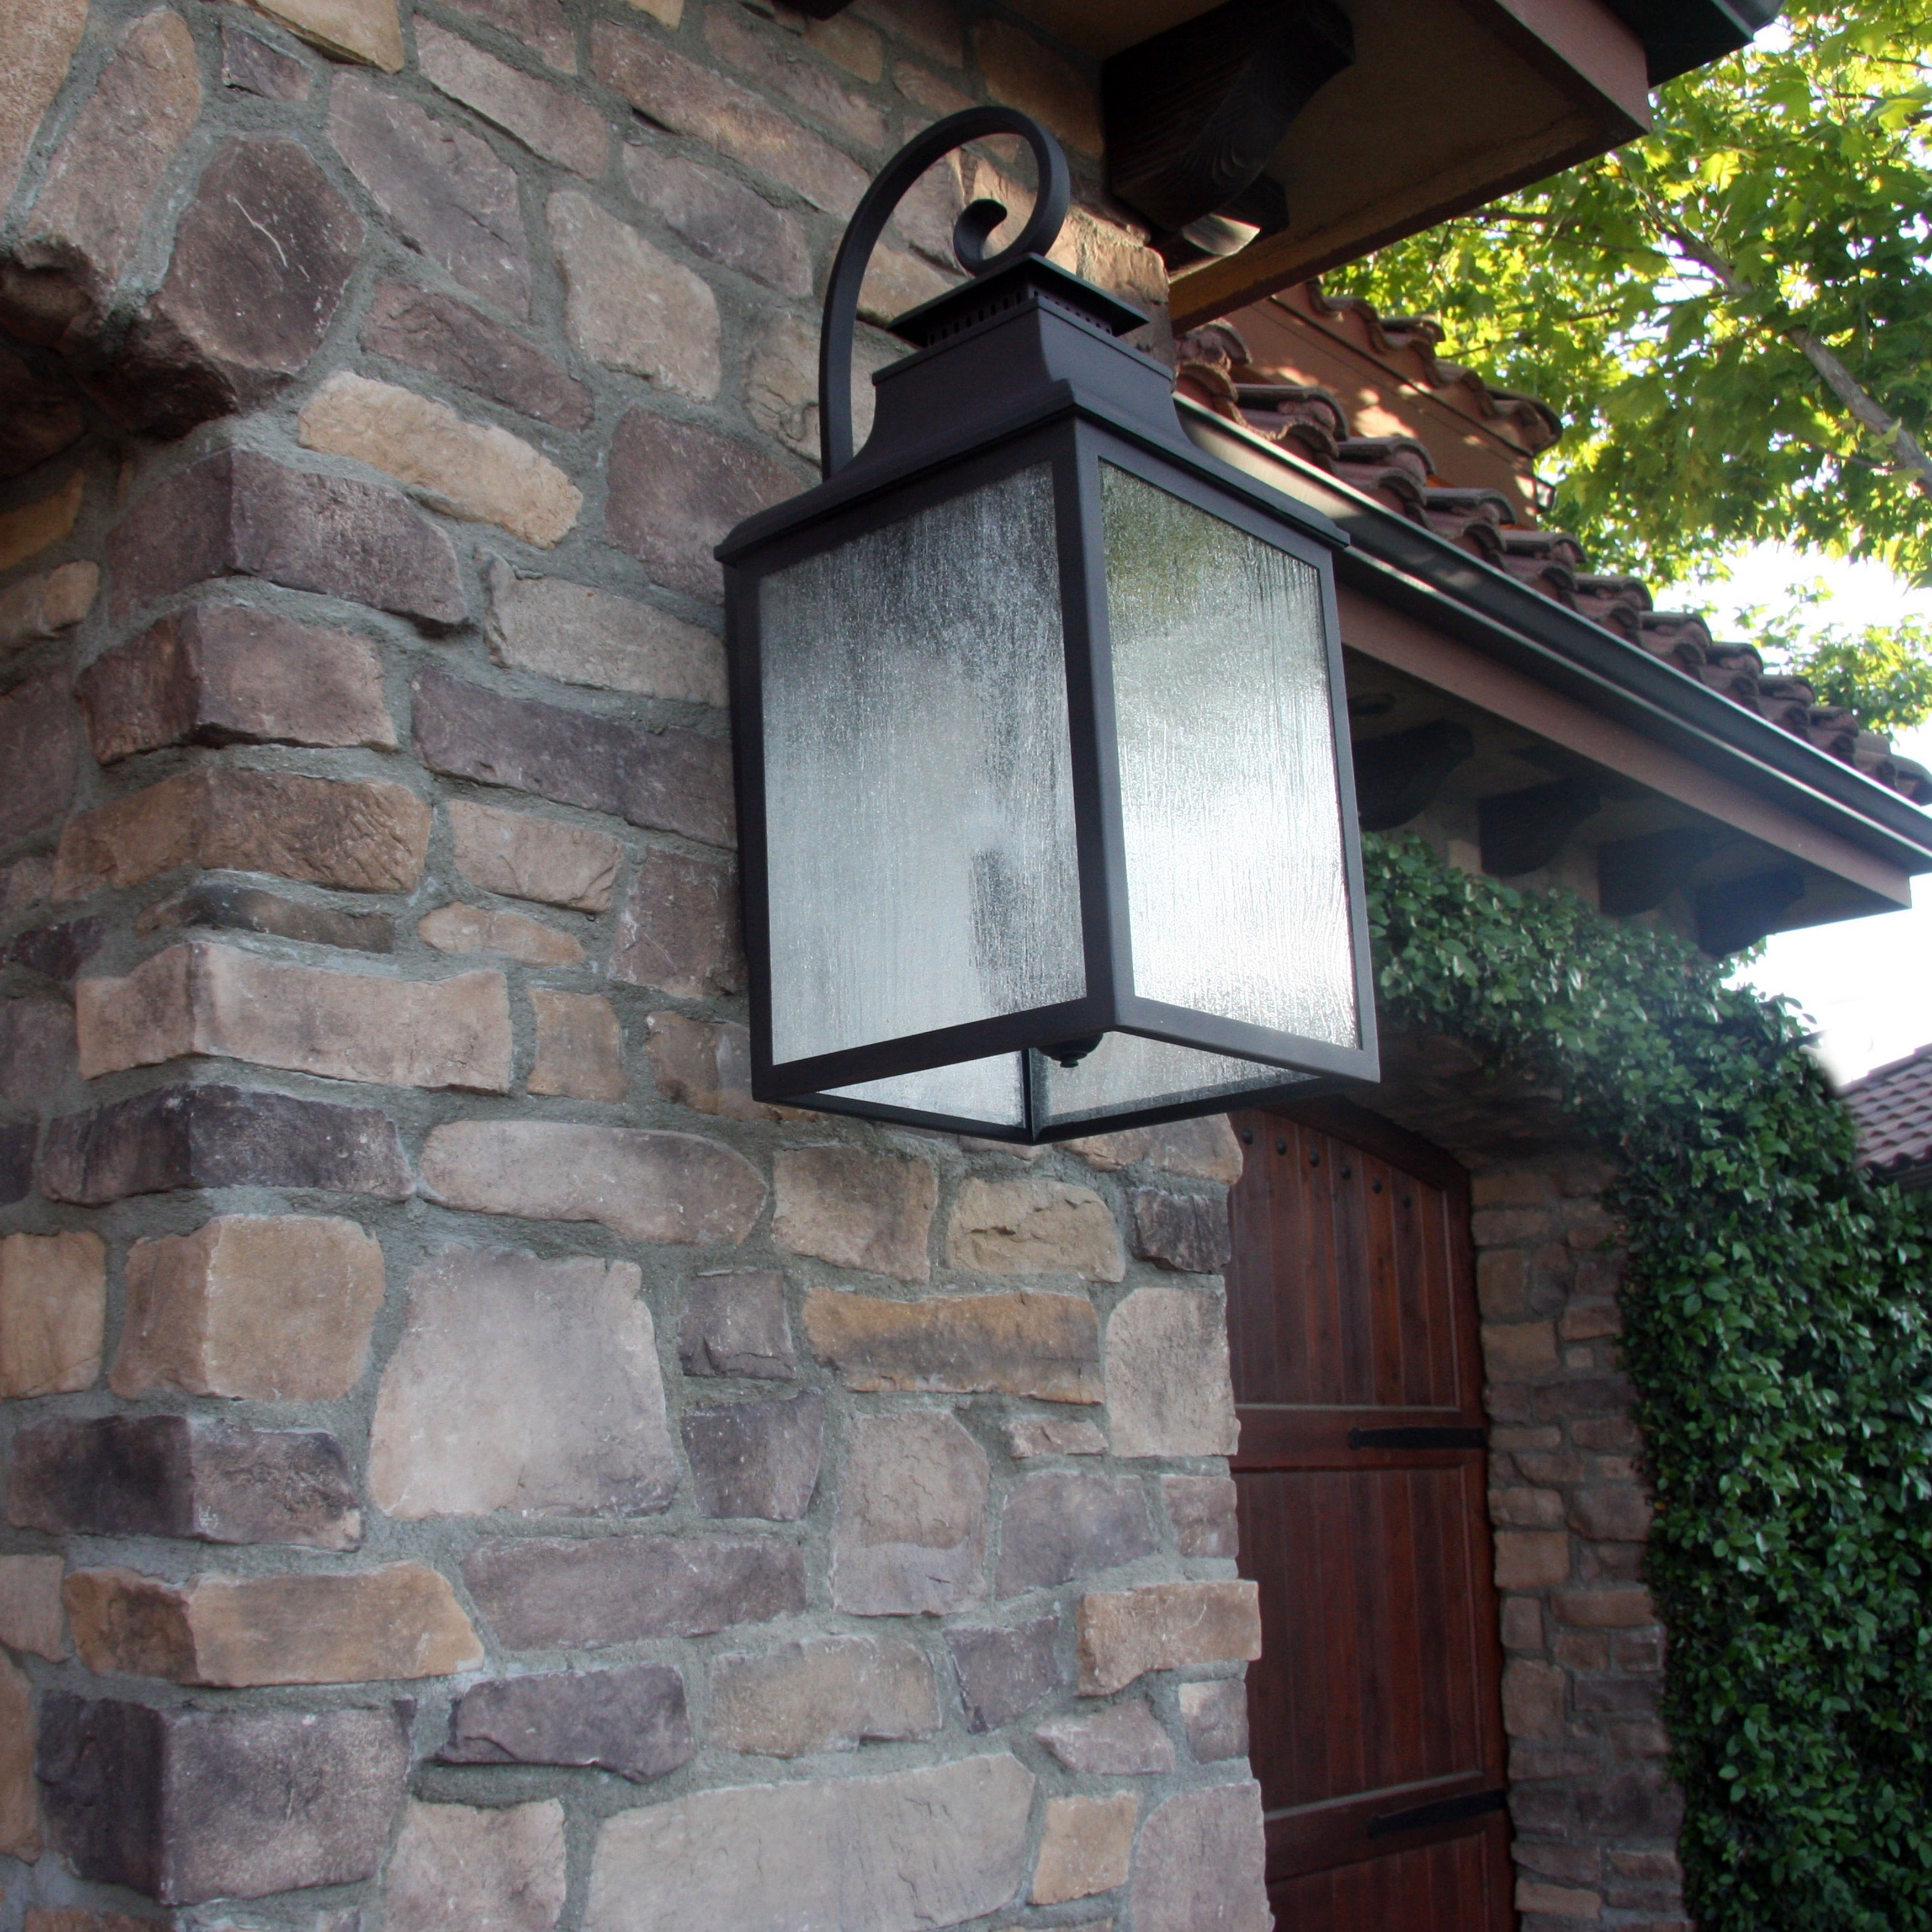 Y-Decor Morgan 3 Light Exterior Lighting in Rustic Bronze : rustic exterior lighting - www.canuckmediamonitor.org